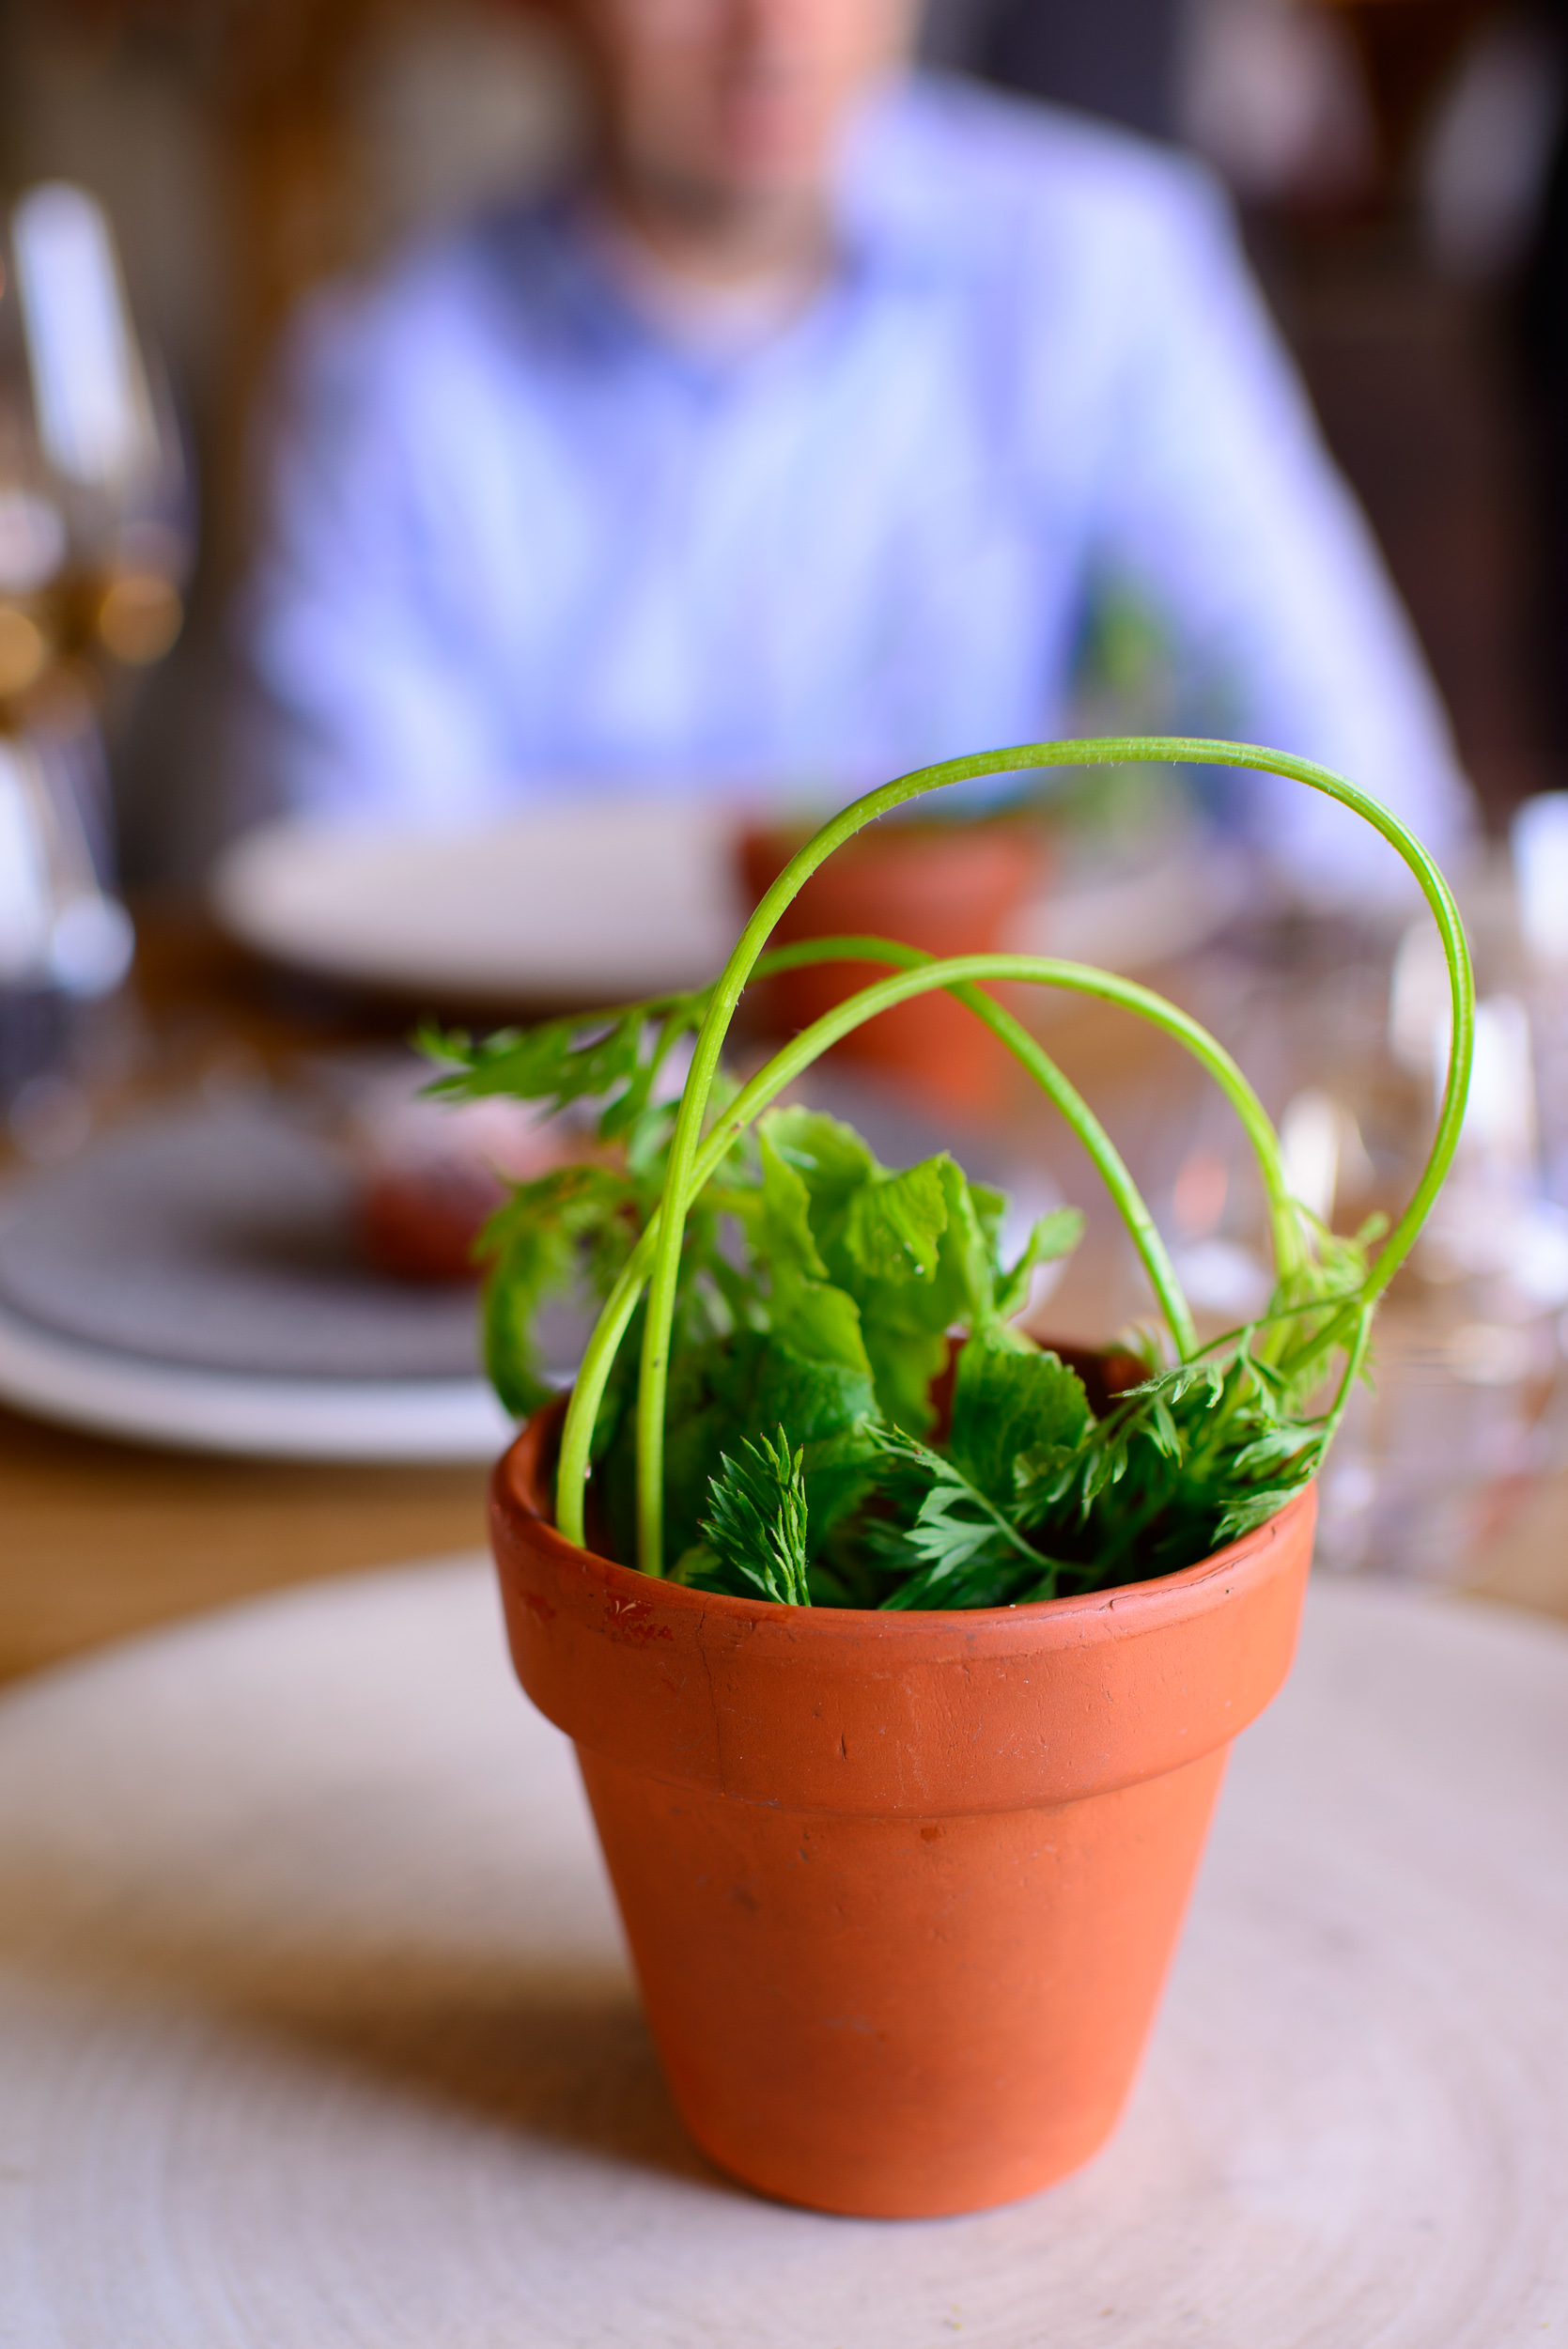 14th Course: Radish, soil, and grass